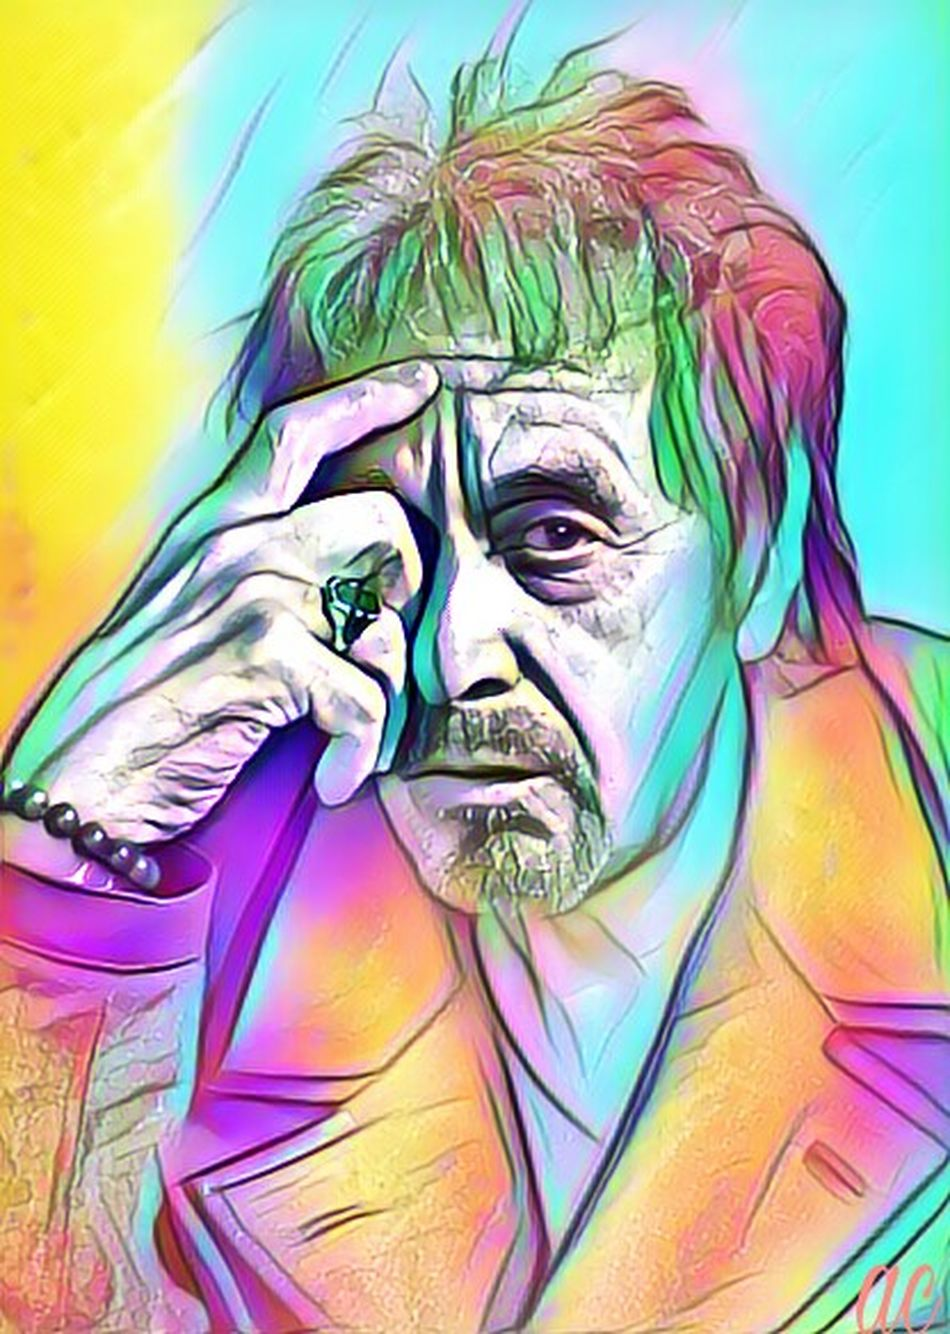 AL PACINO Human Representation Painted Image Vibrant Color Multi Colored Collageoftheday Collageartwork American Actor